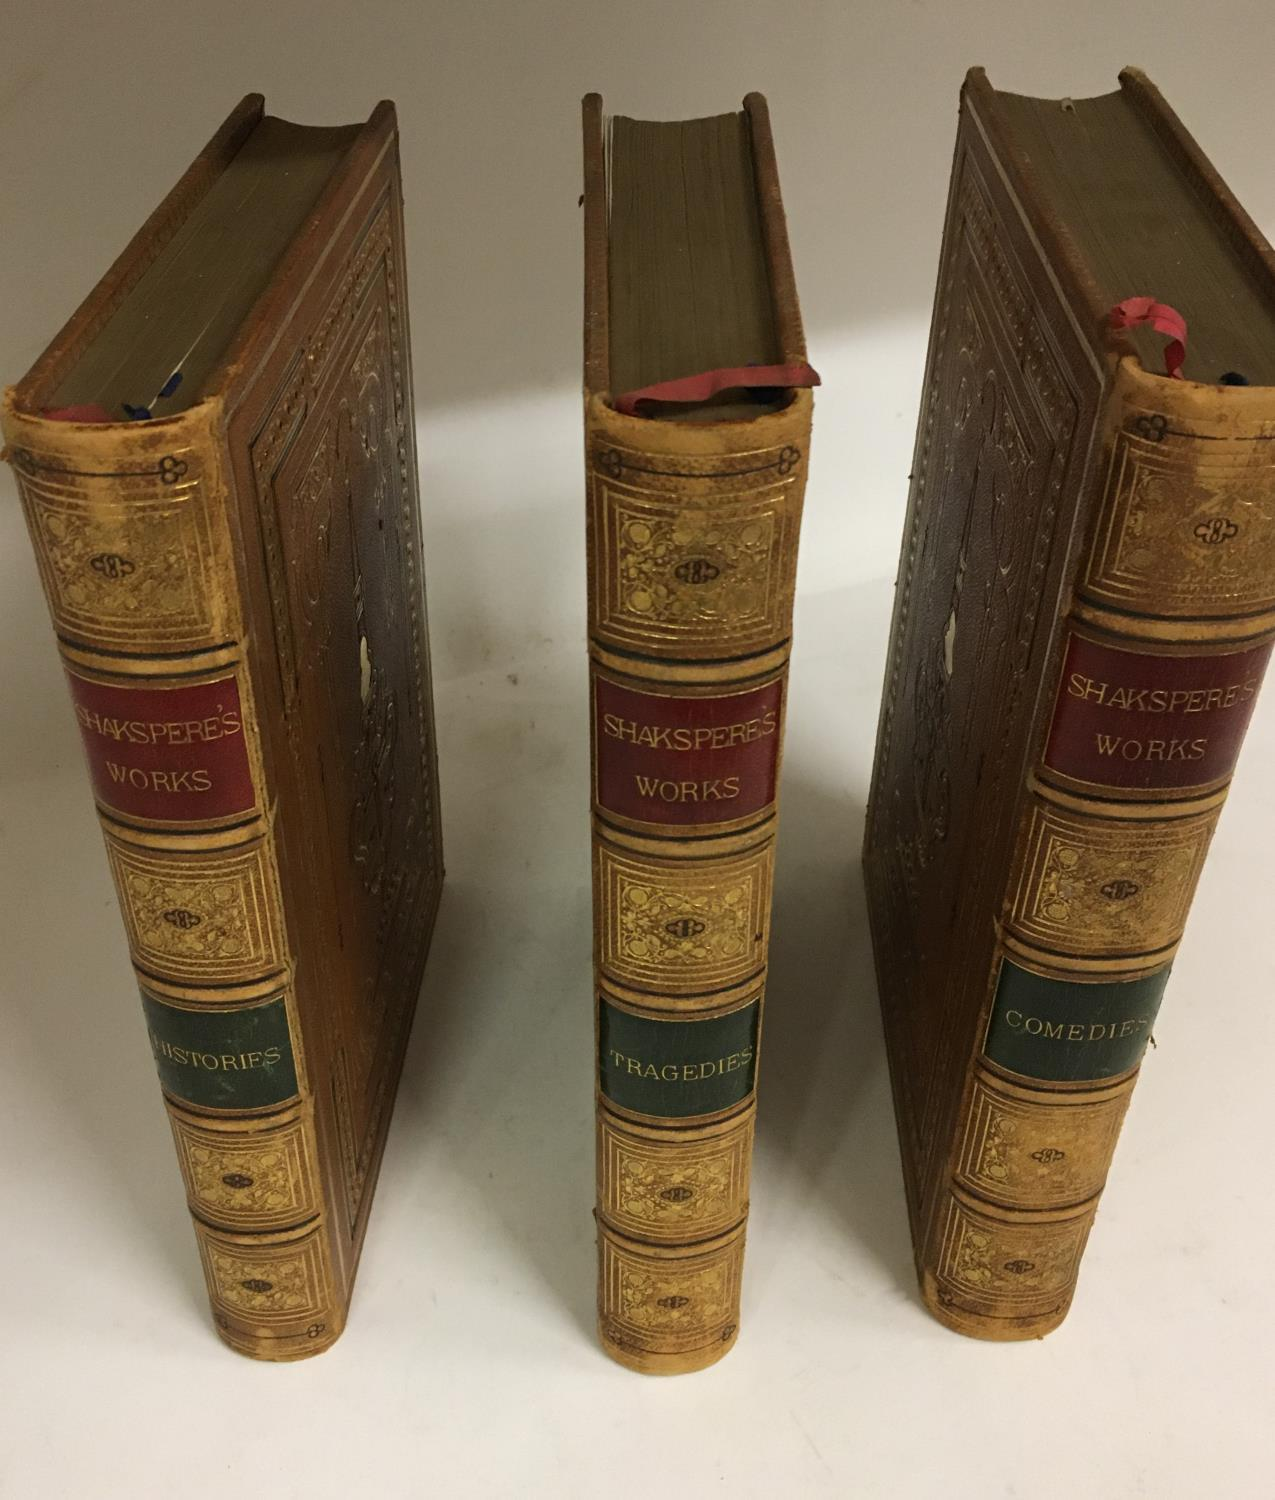 Shakespeare, William. The Complete Works, 3 volumes, plates, contemporary full morocco, decorated - Image 2 of 7